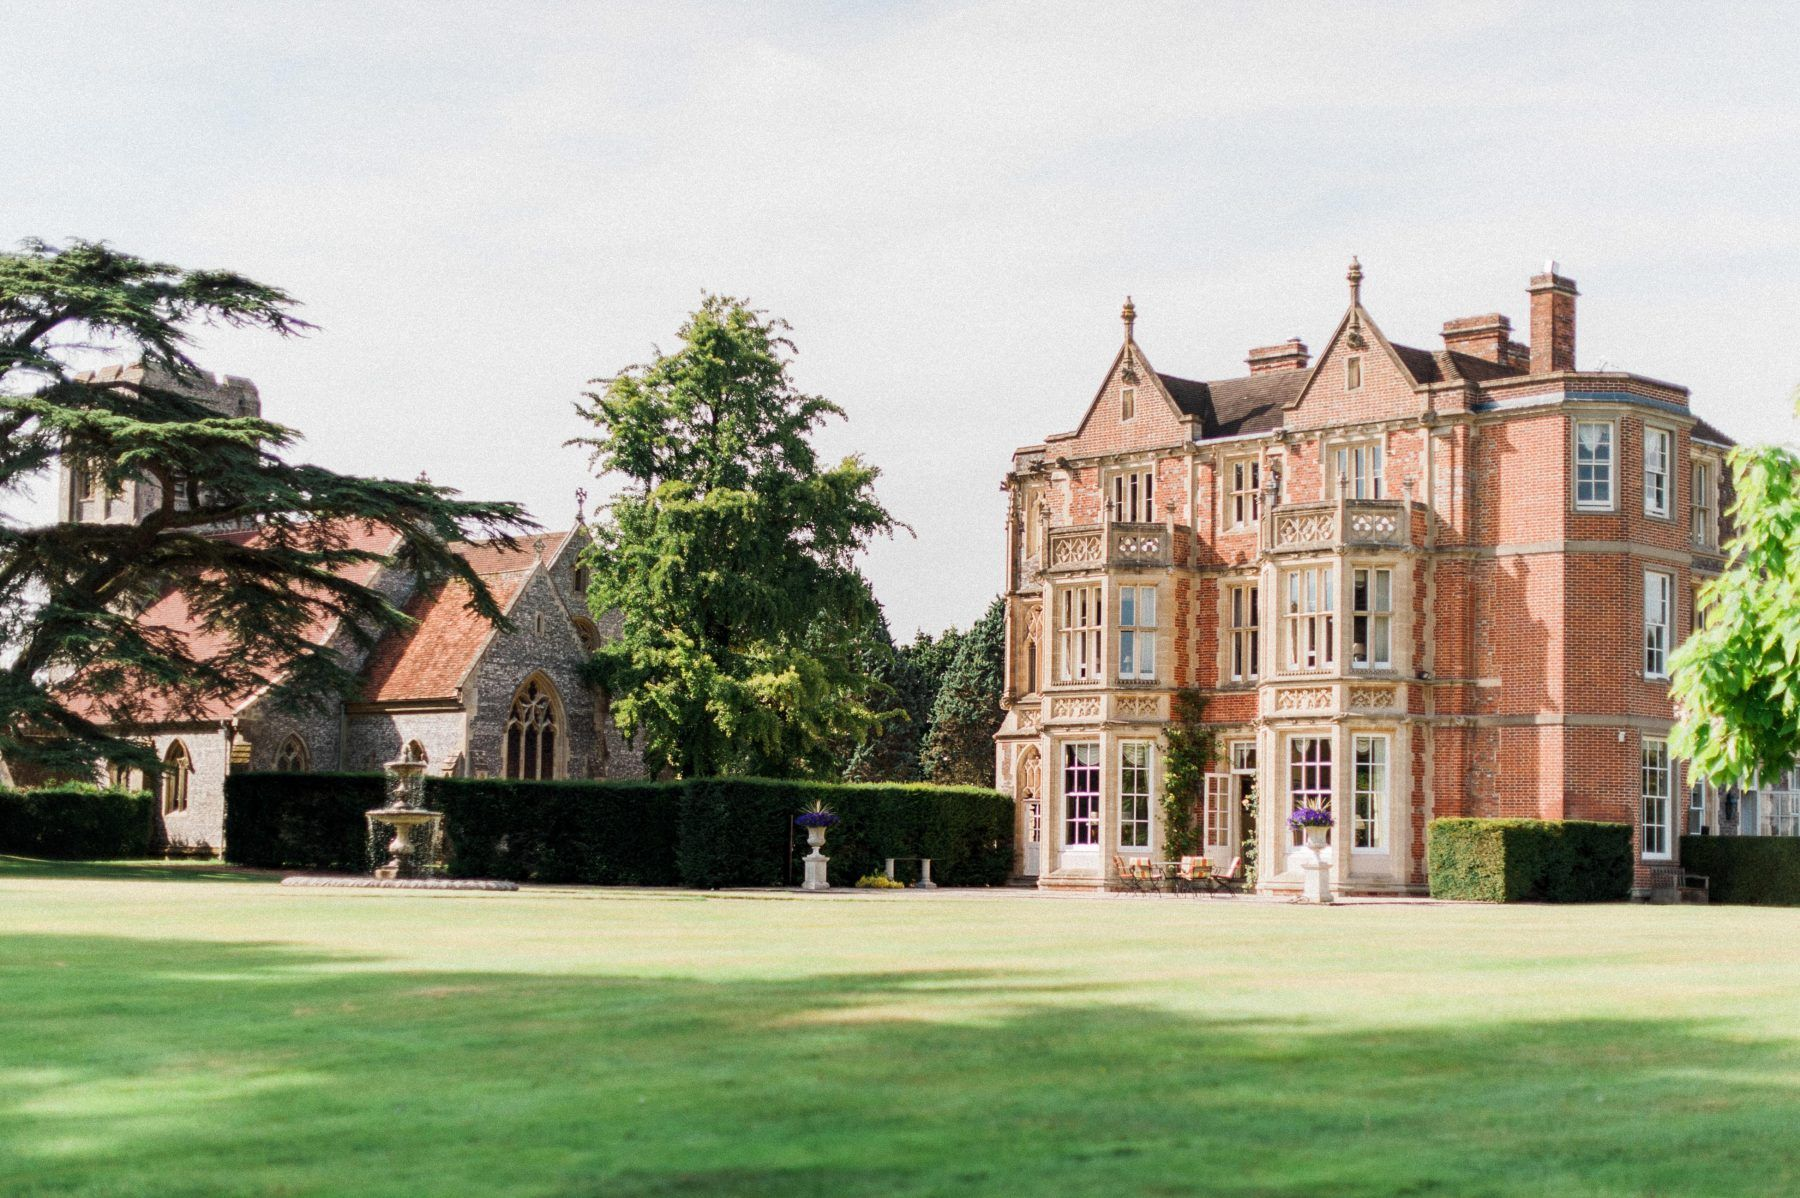 Marquee wedding venues south east england